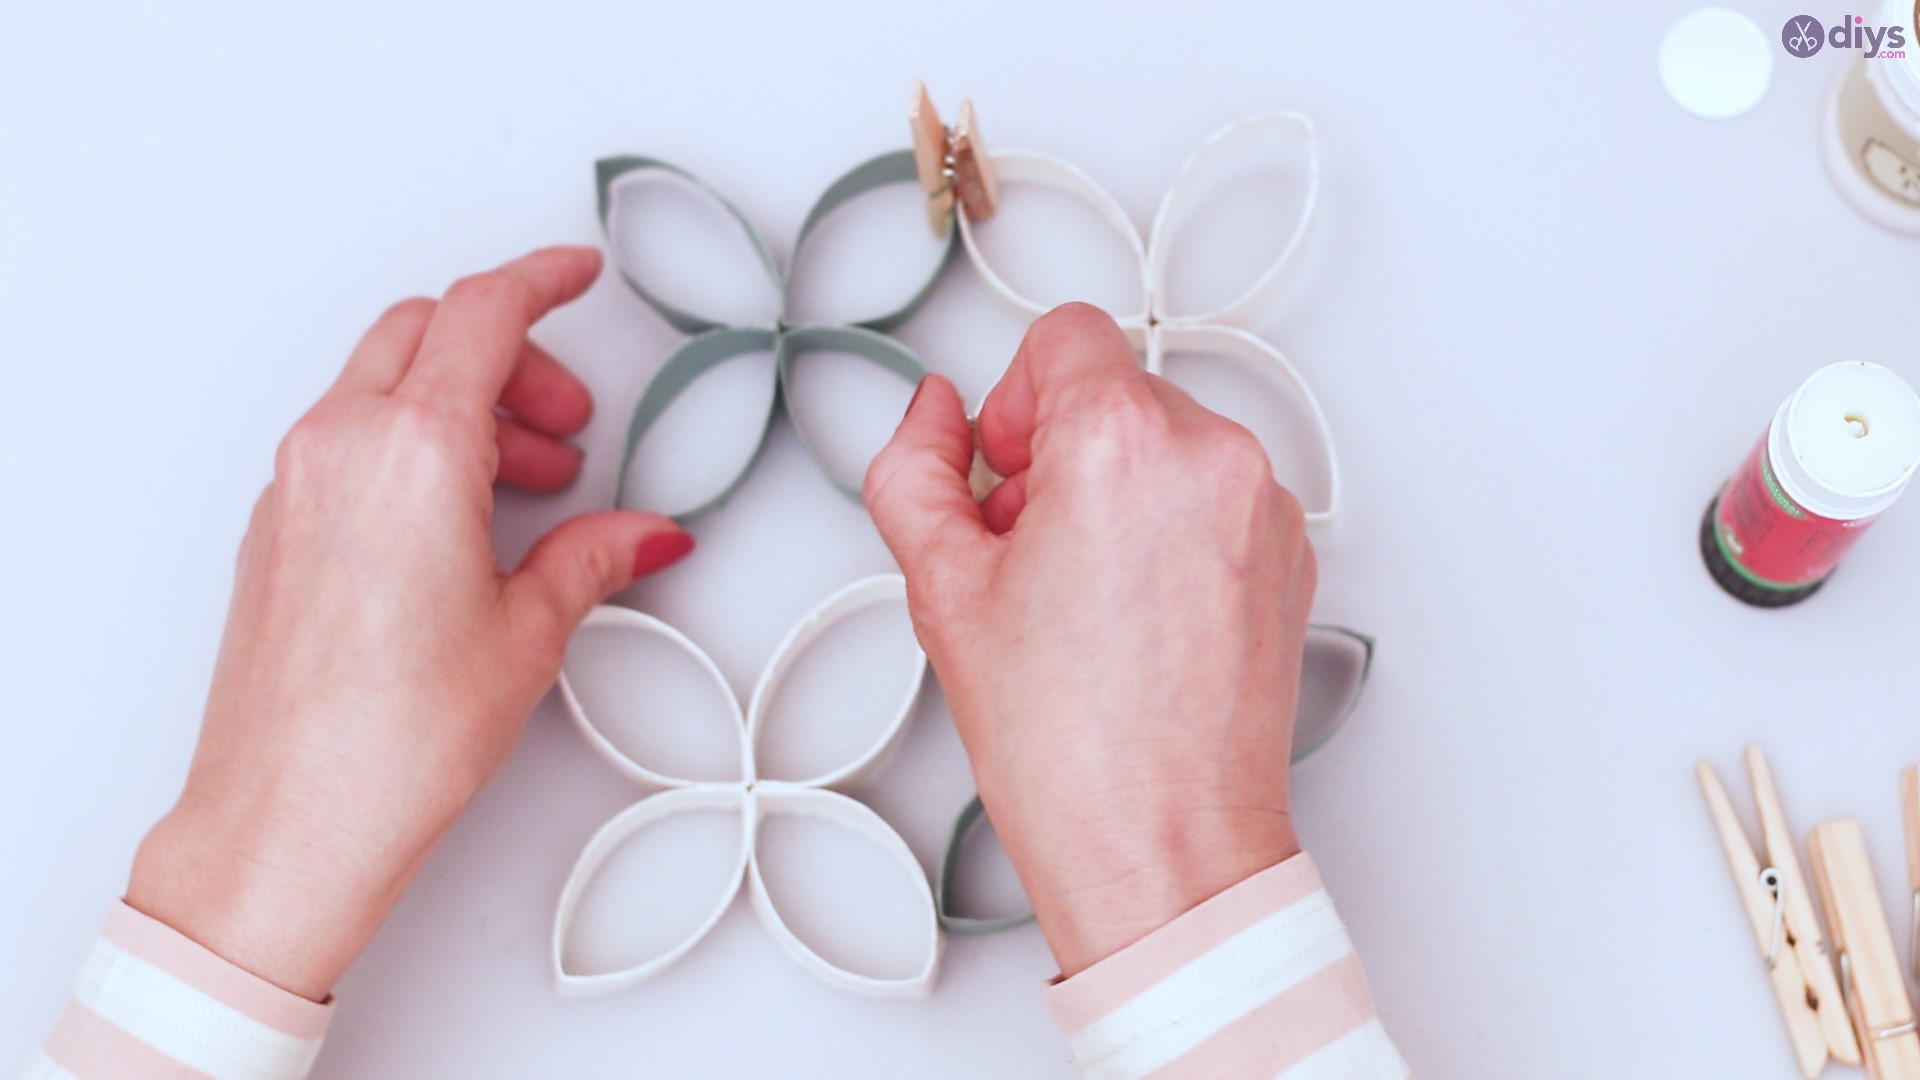 Toilet paper roll wall decor diy project (39)